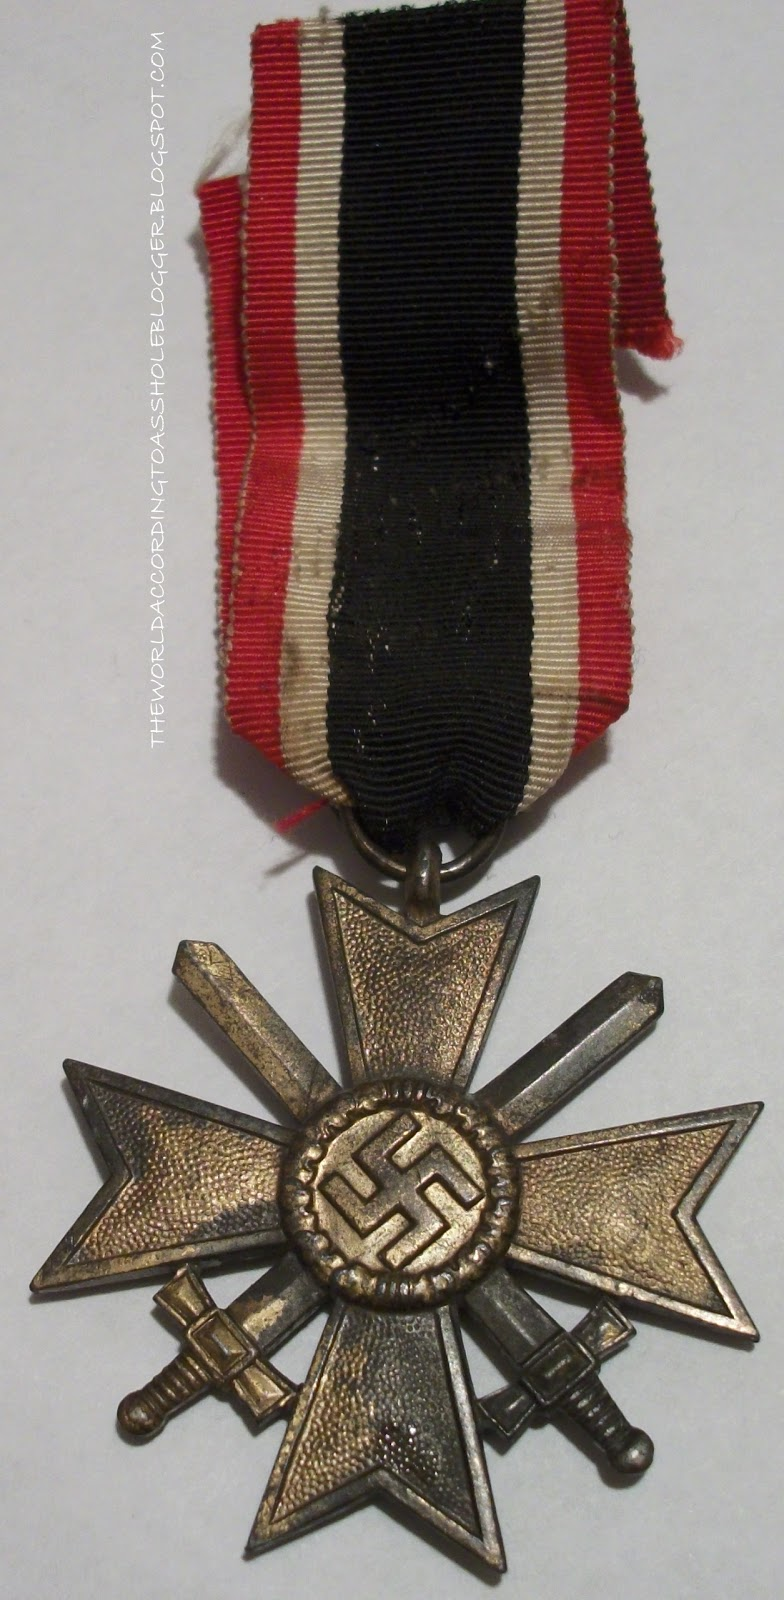 WWII German War Merit Cross with Swords for Combatants